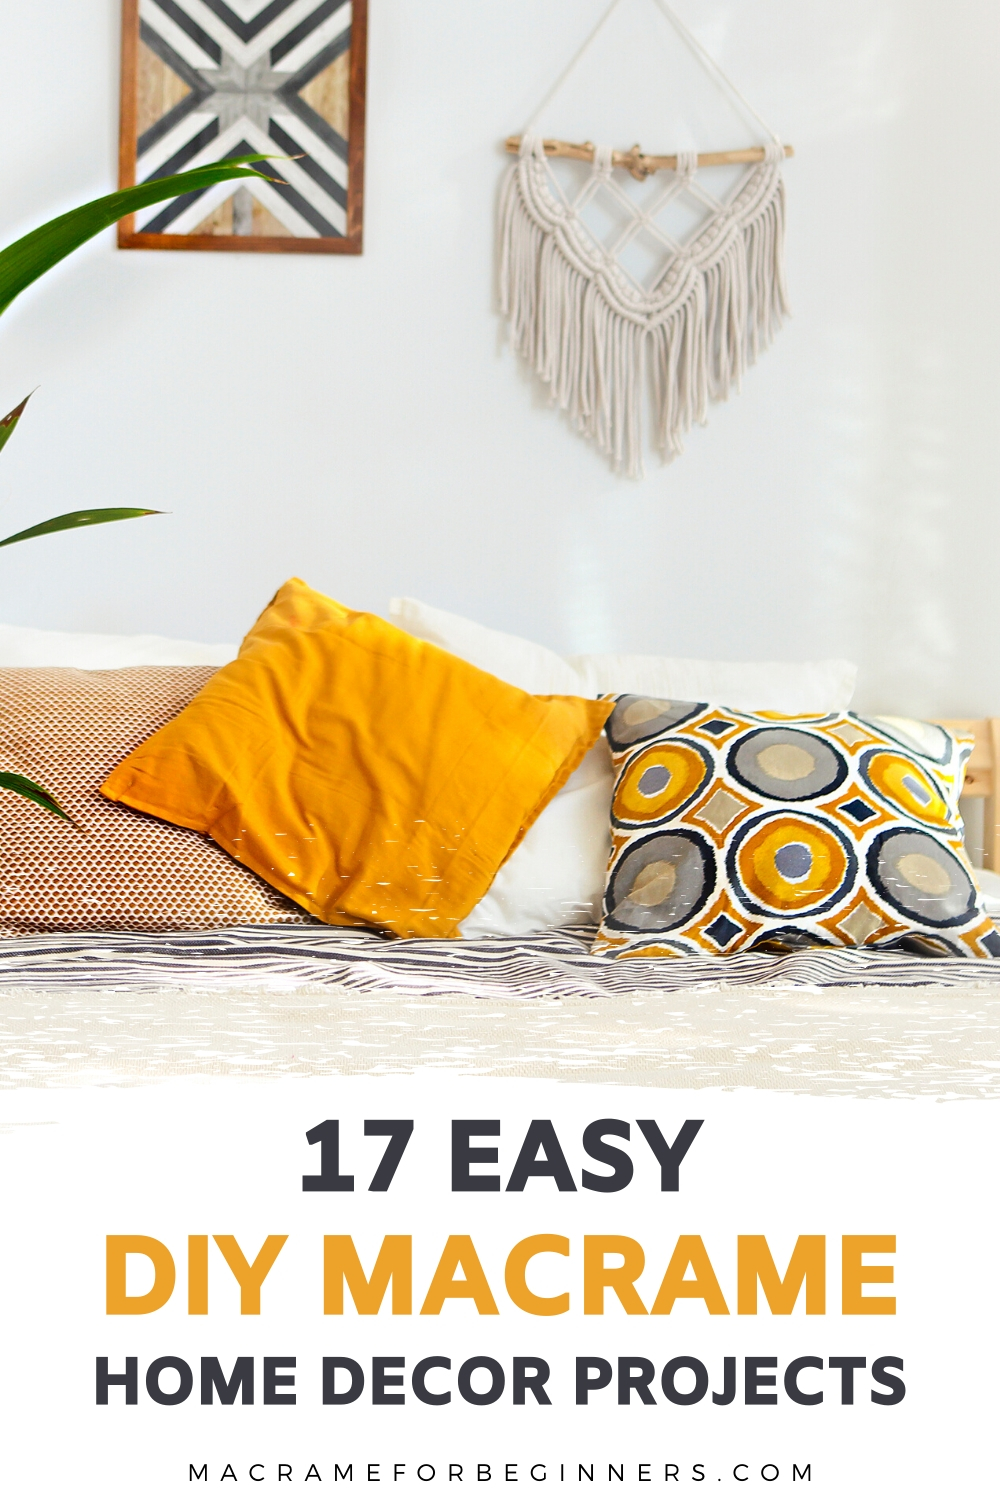 17 BOHO Macrame Home Decor Projects for Beginners - Macrame for Beginners